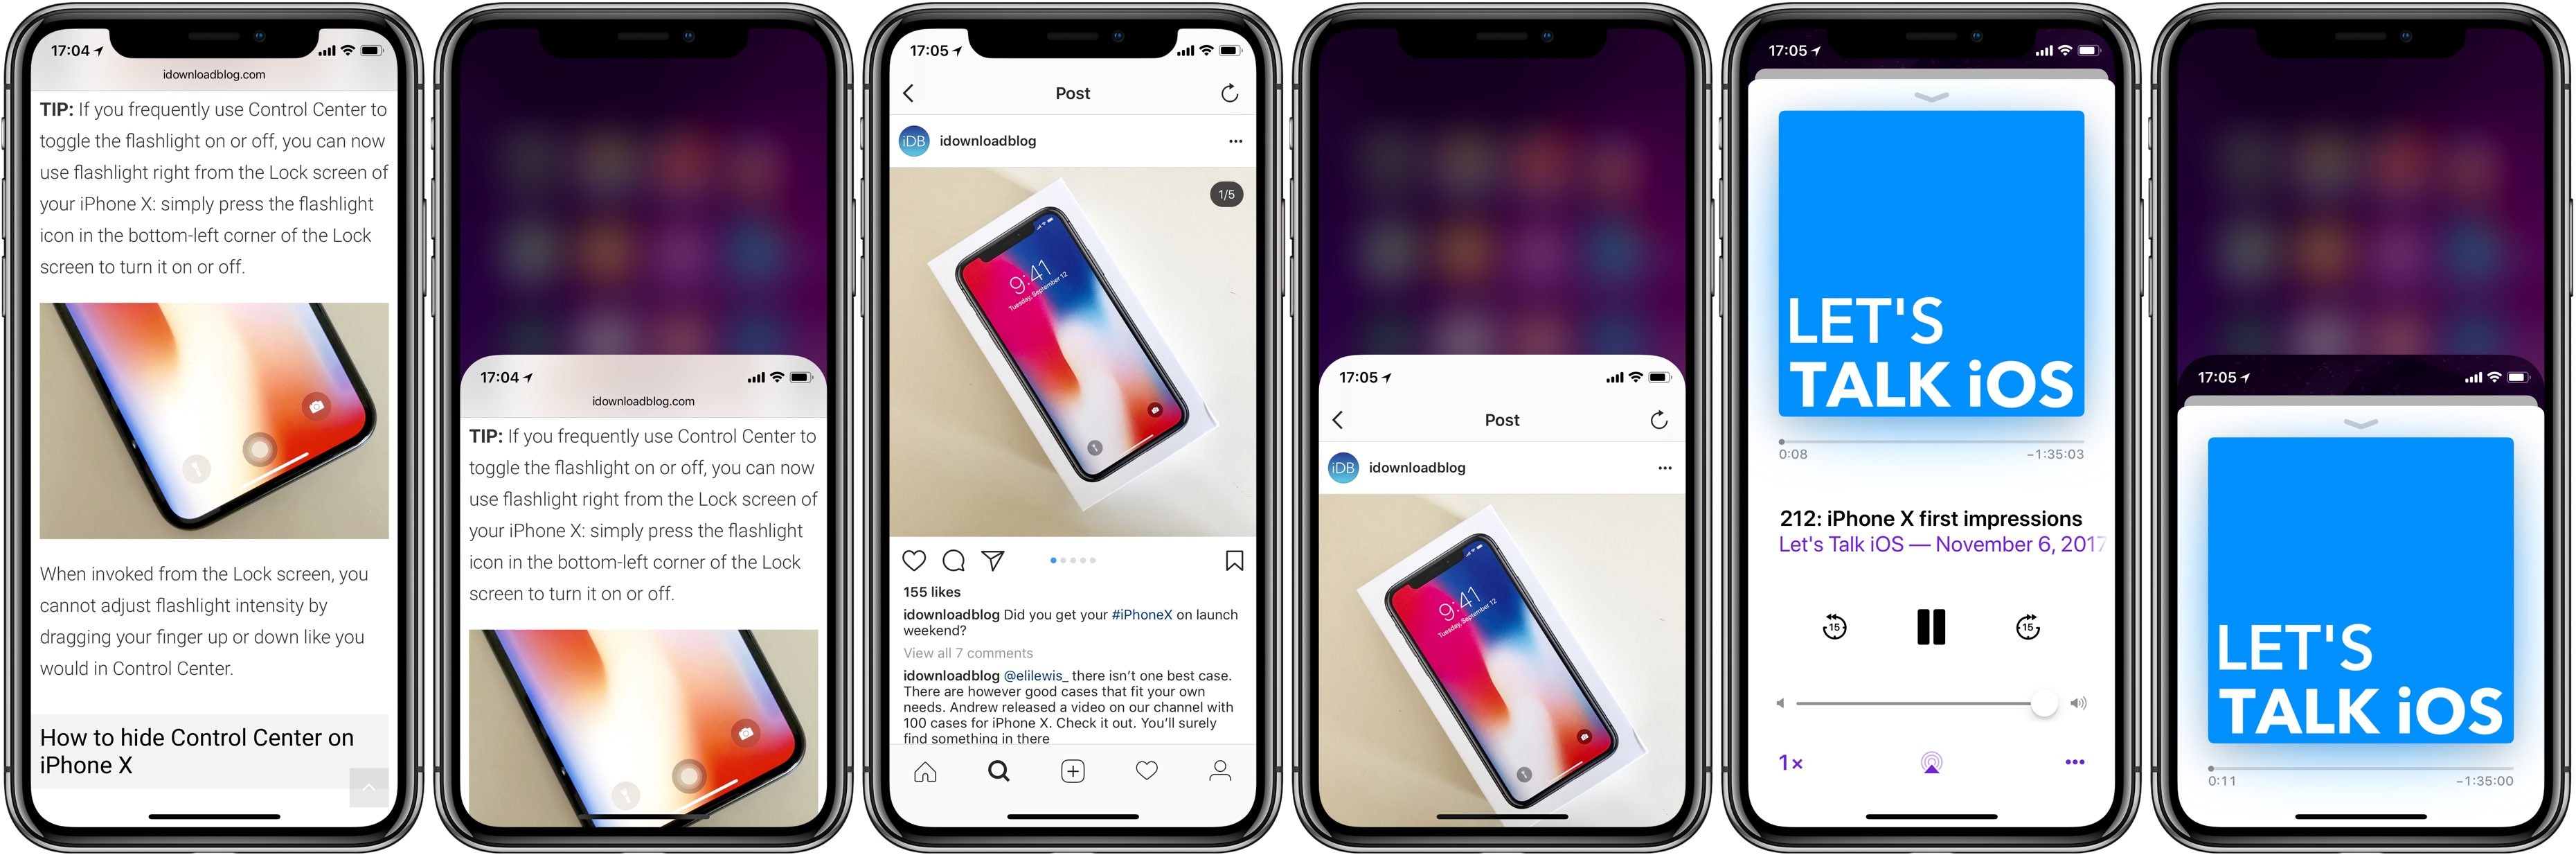 reachability iphone x